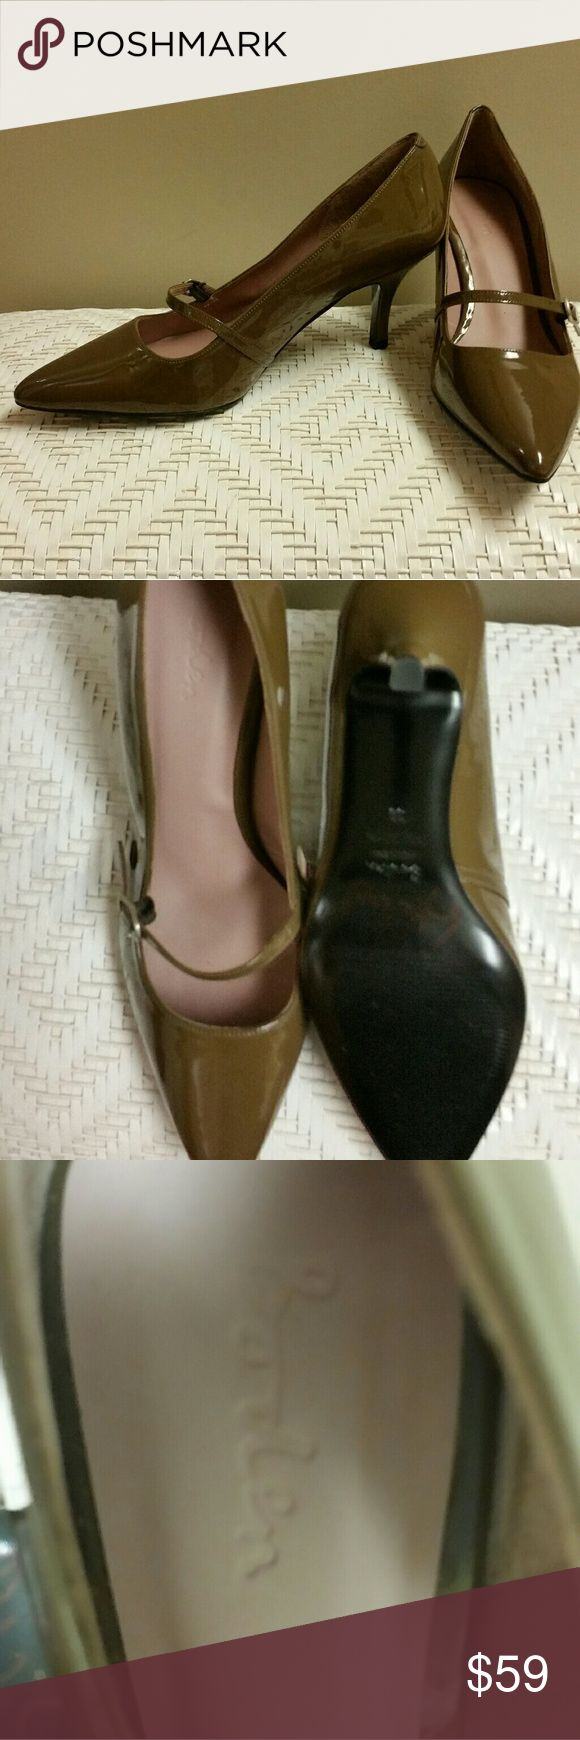 """Boden Vintage-inspired Patent-leather Kitten Heels Slip these on your feet and think of Audrey Hepburn (or Mad Men, depending upon your viewing experience) to enjoy an experience in timeless fashion. These shoes were crafted in Spain in a pecan brown patent leather. Adjustable strap; 2-3/4"""" heels. Brand new without box or tag. Broden Shoes Heels"""